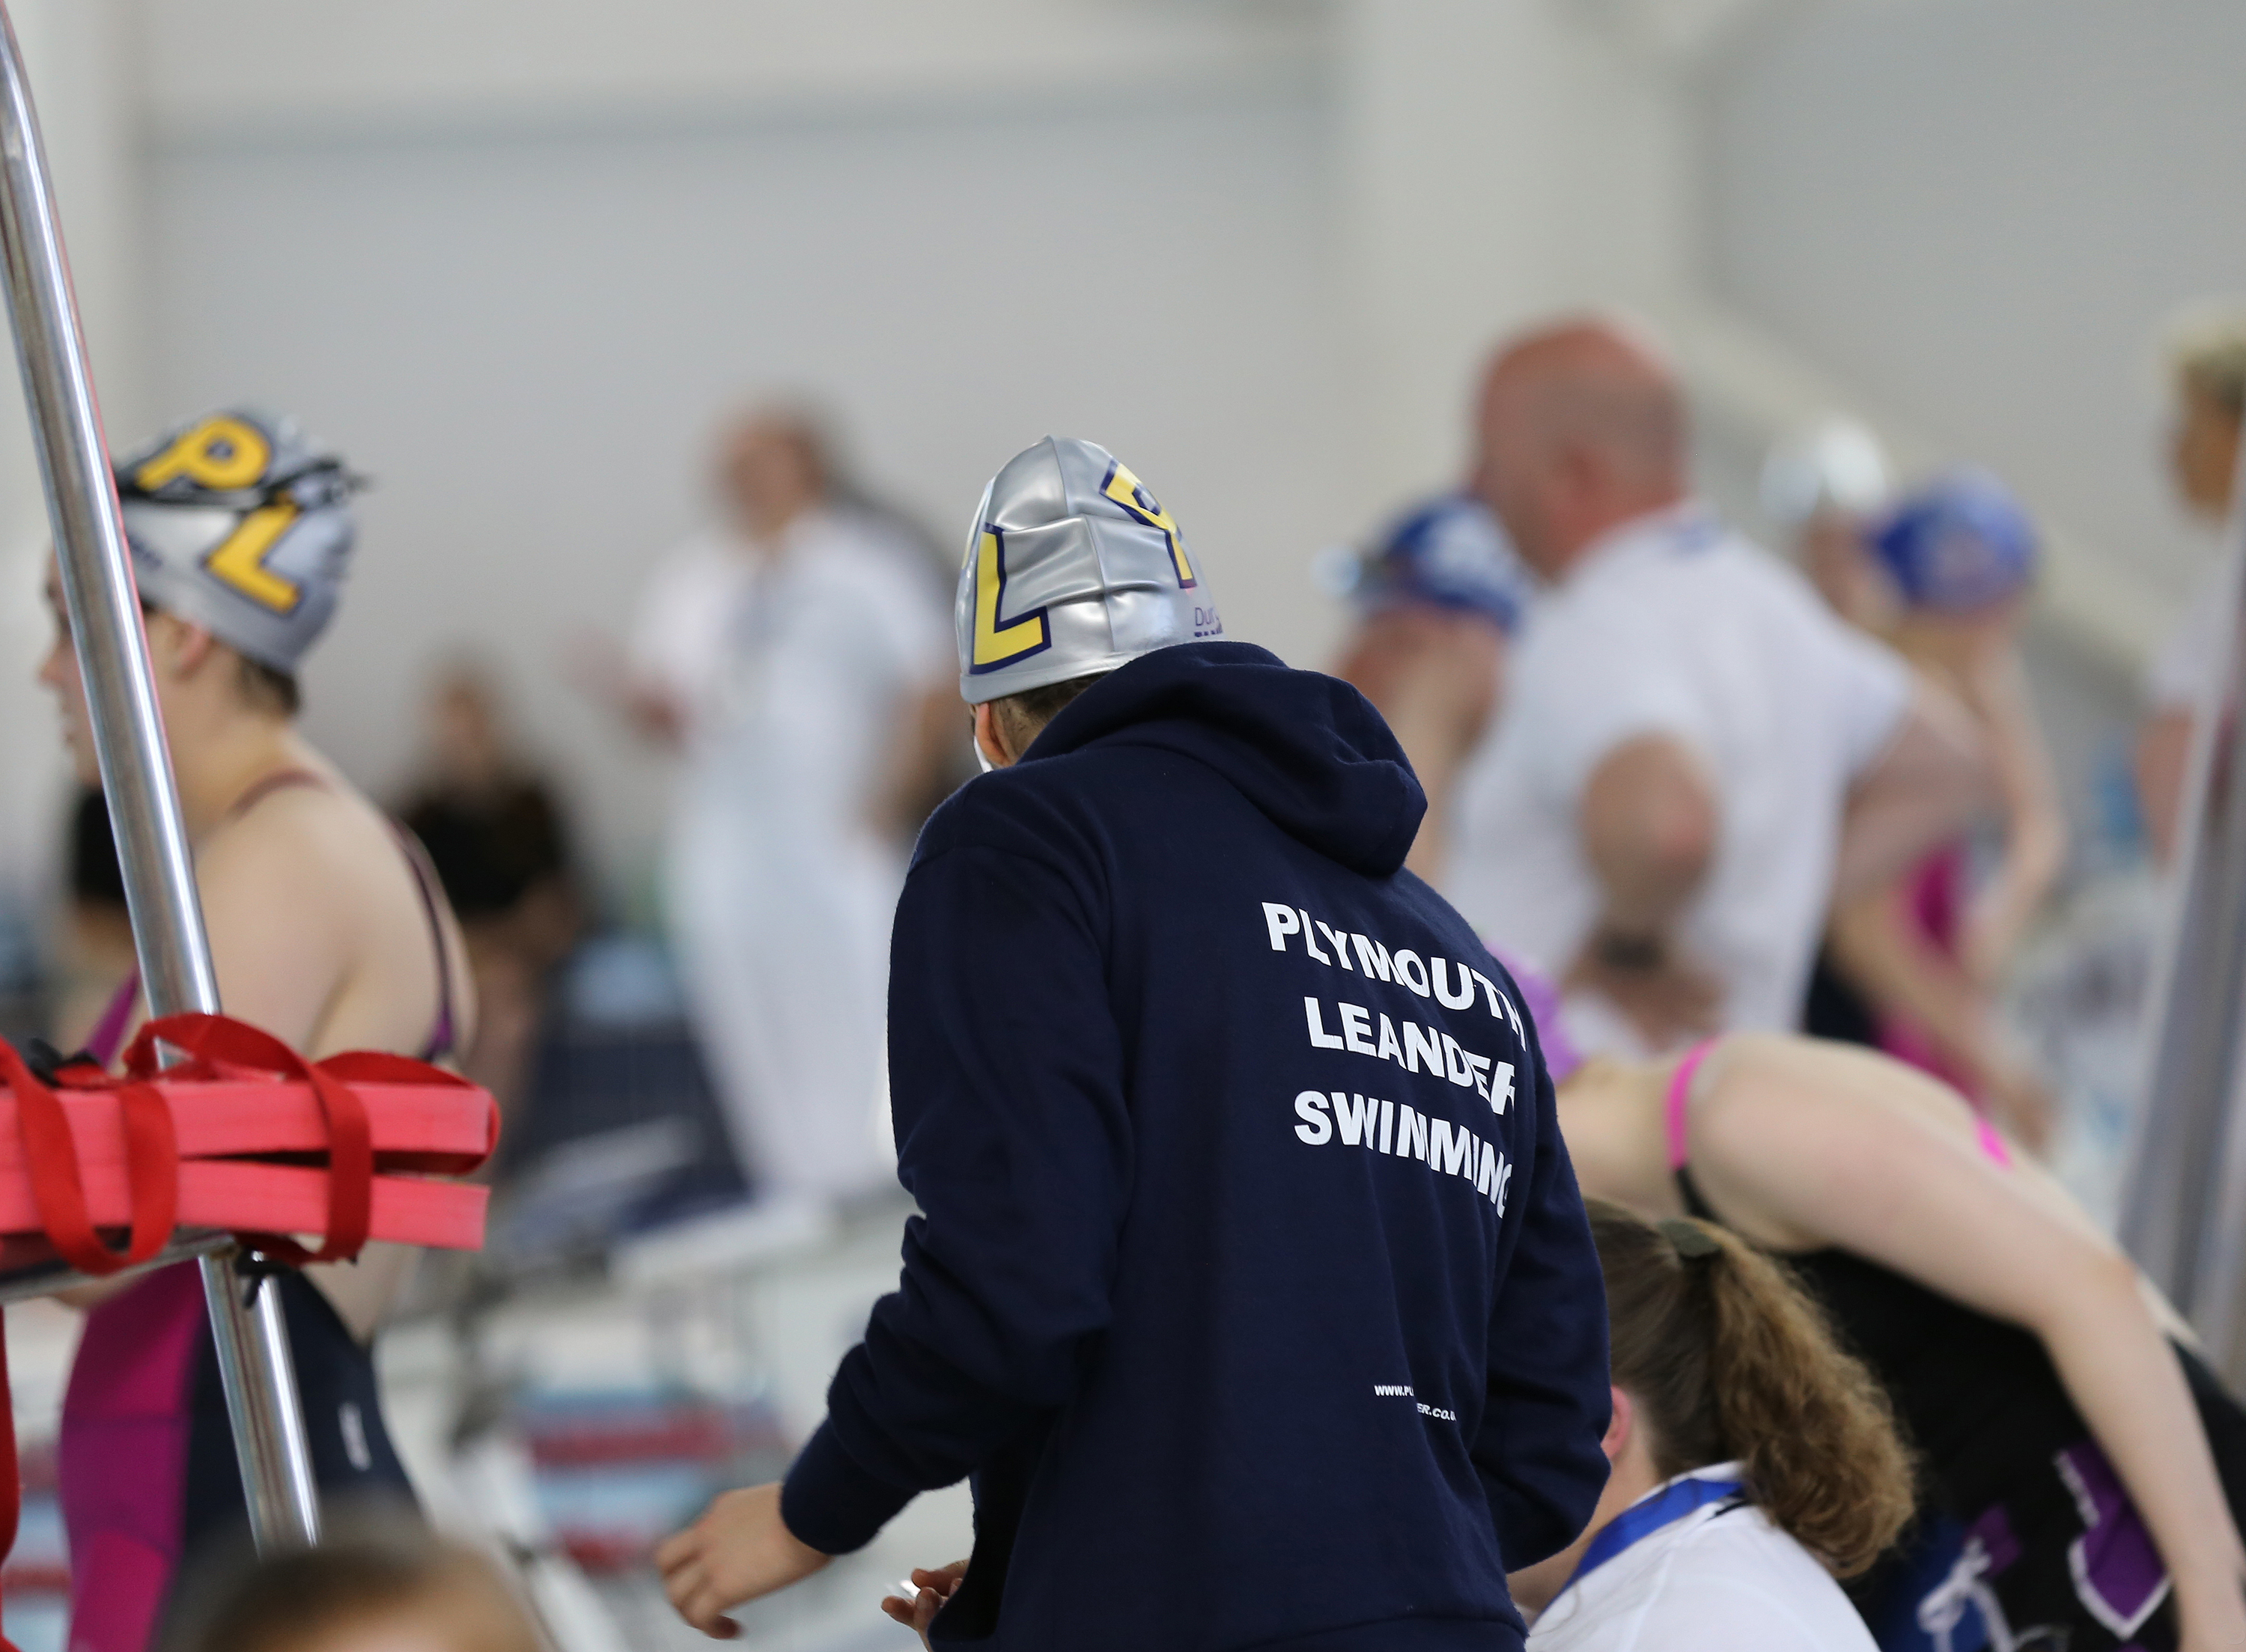 Plymouth Leander Swimming